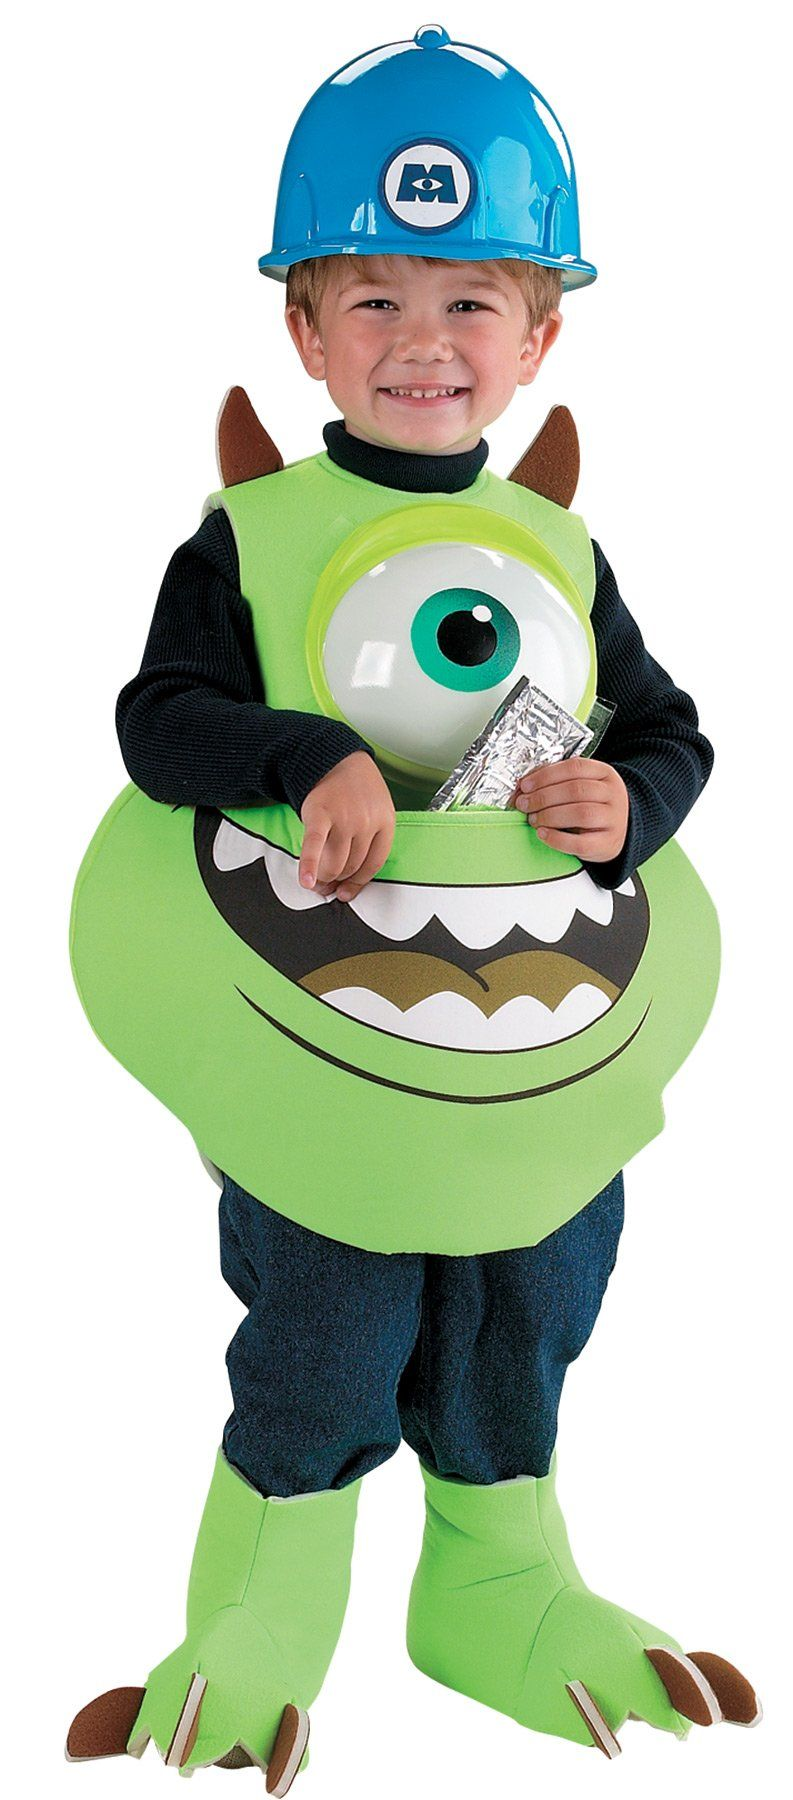 Mike candy catcher | Products | Boy costumes, Halloween